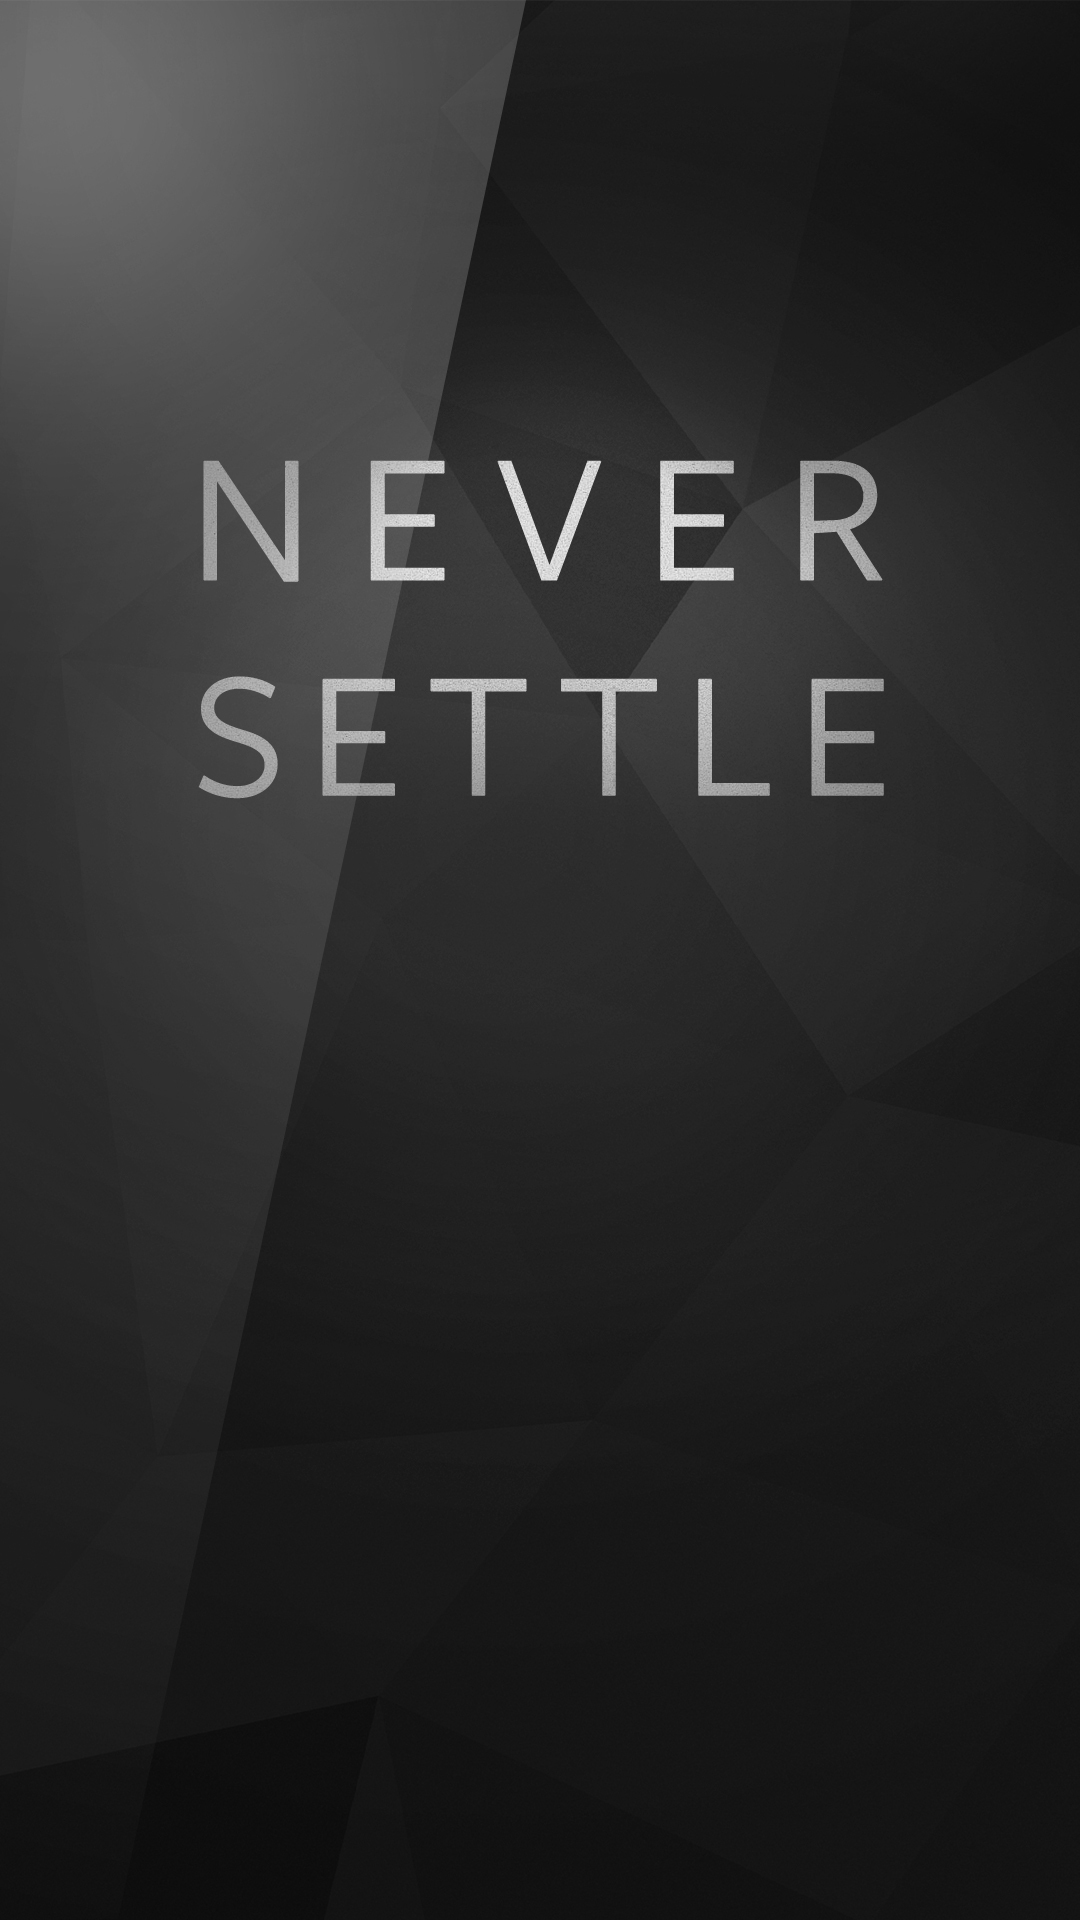 wallpaper oneplus one